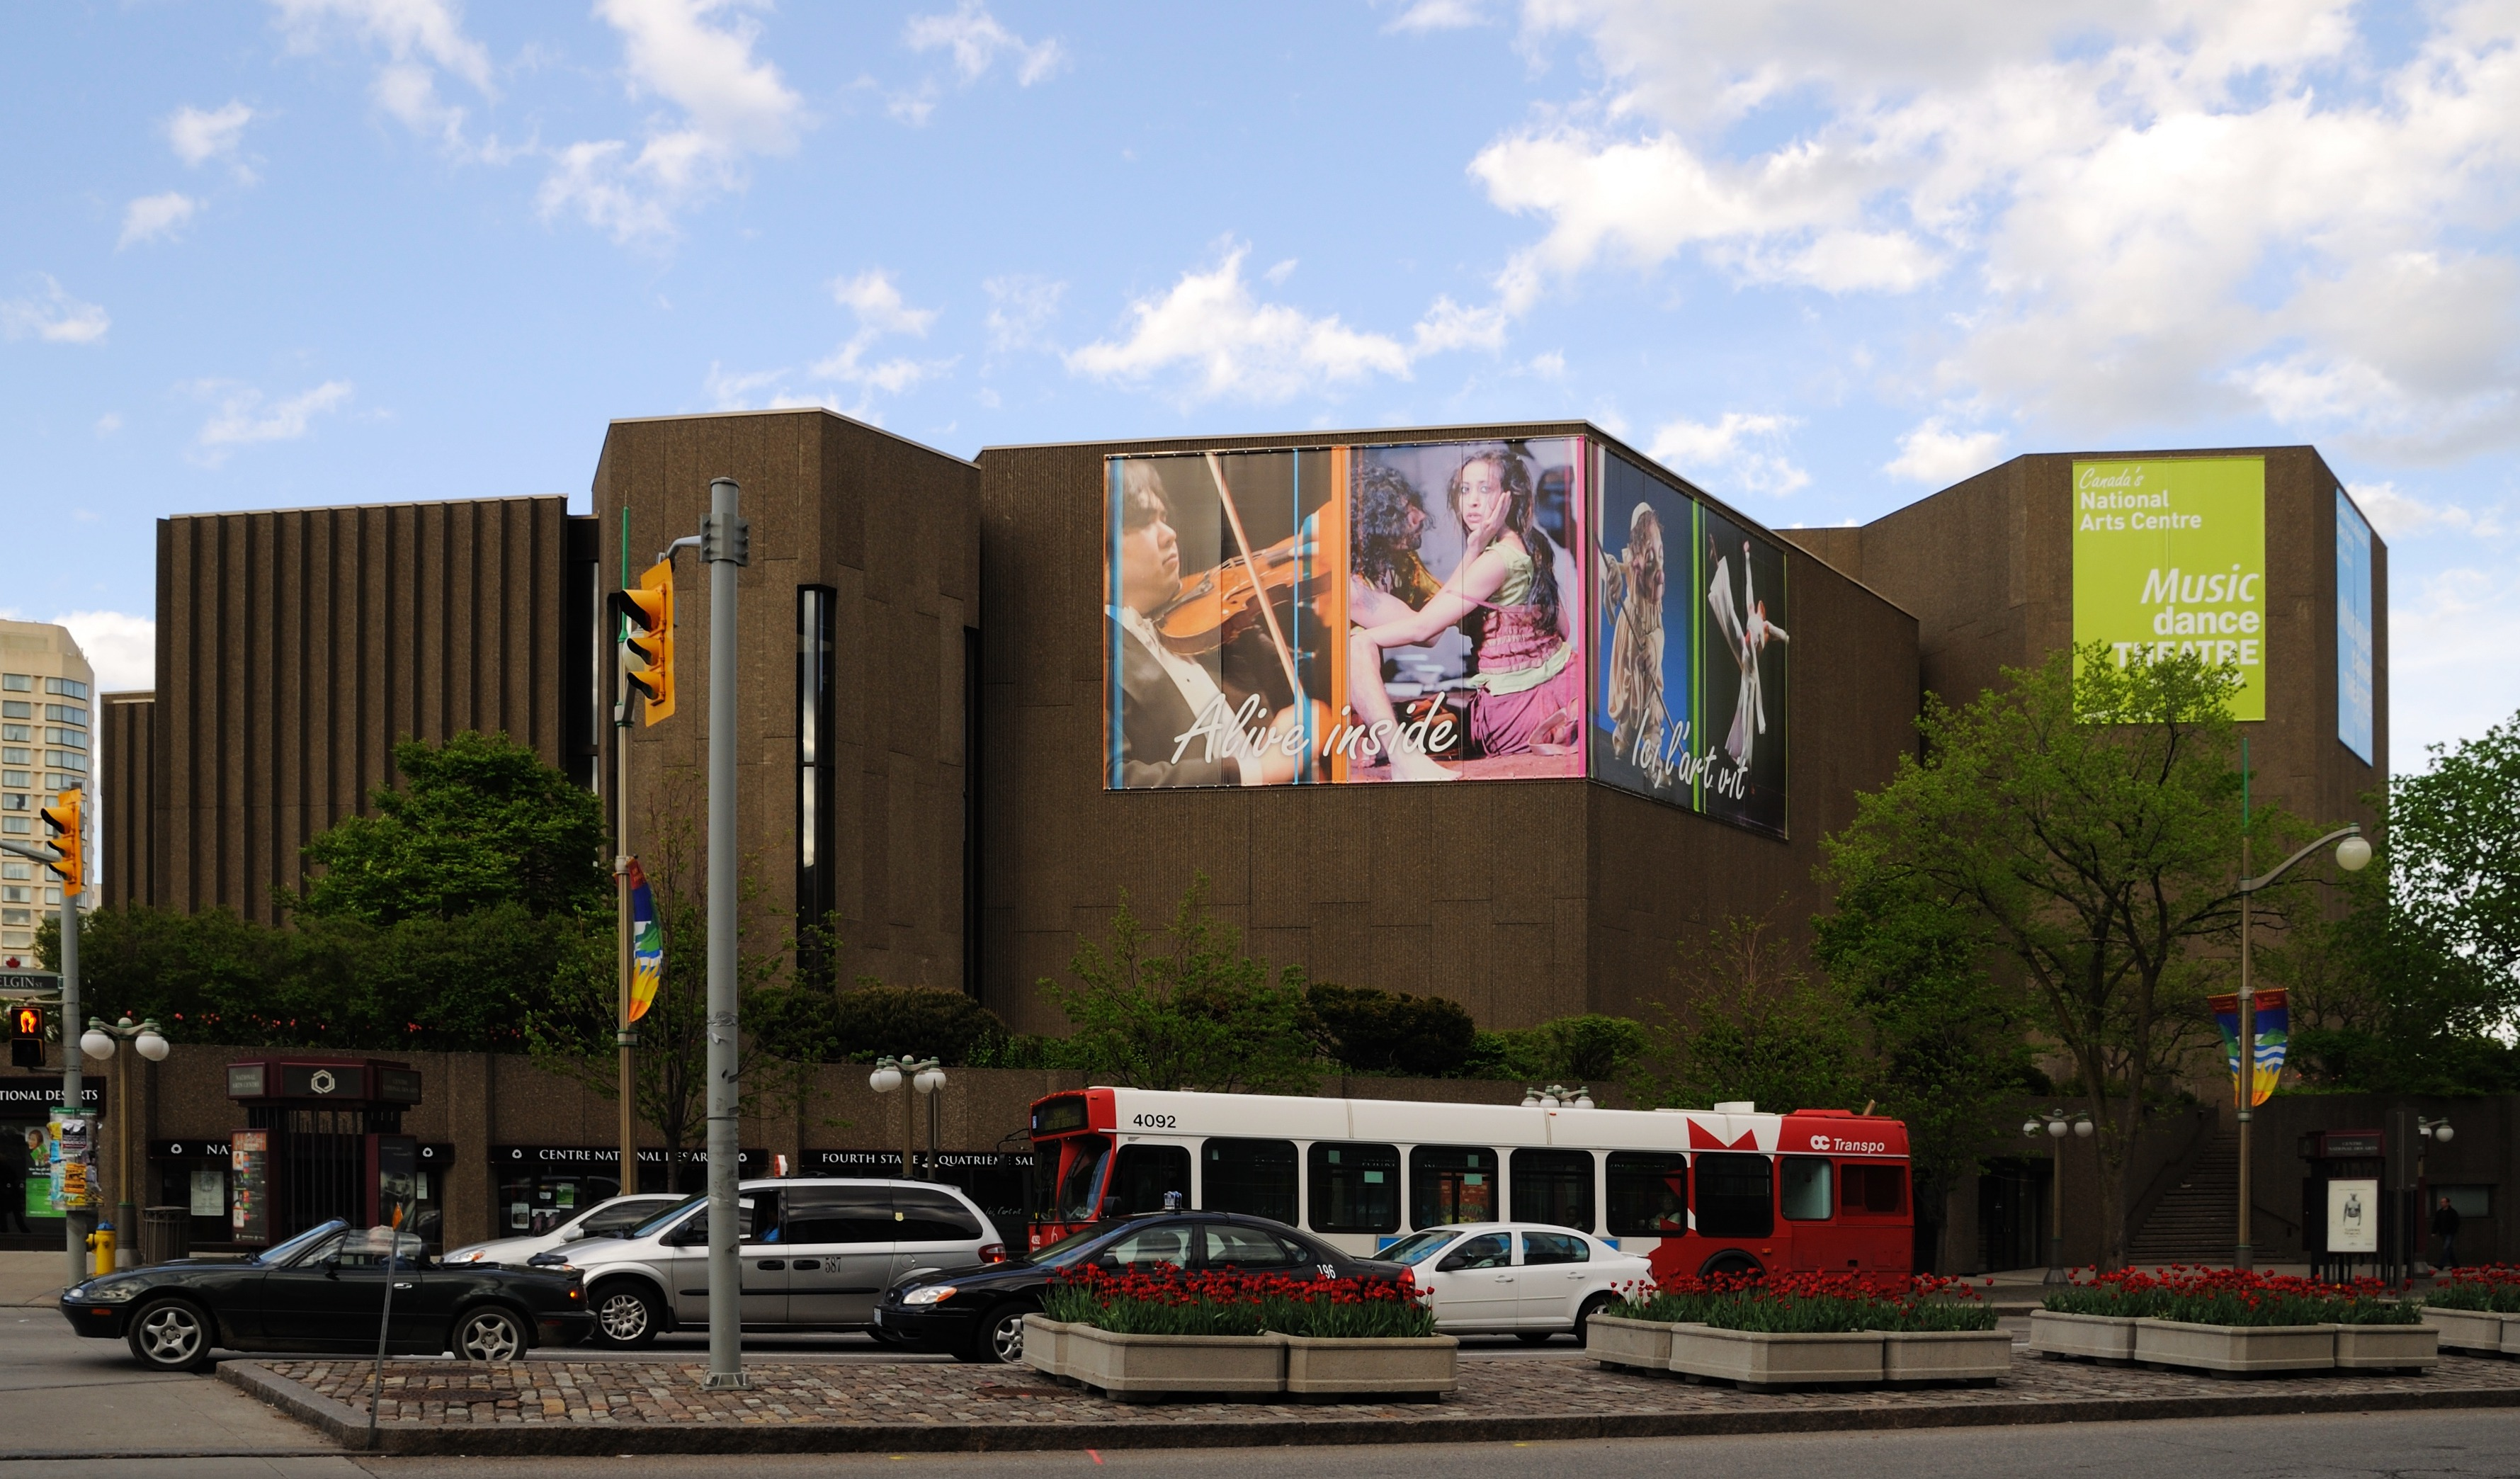 Google images for National centre for the performing arts architecture